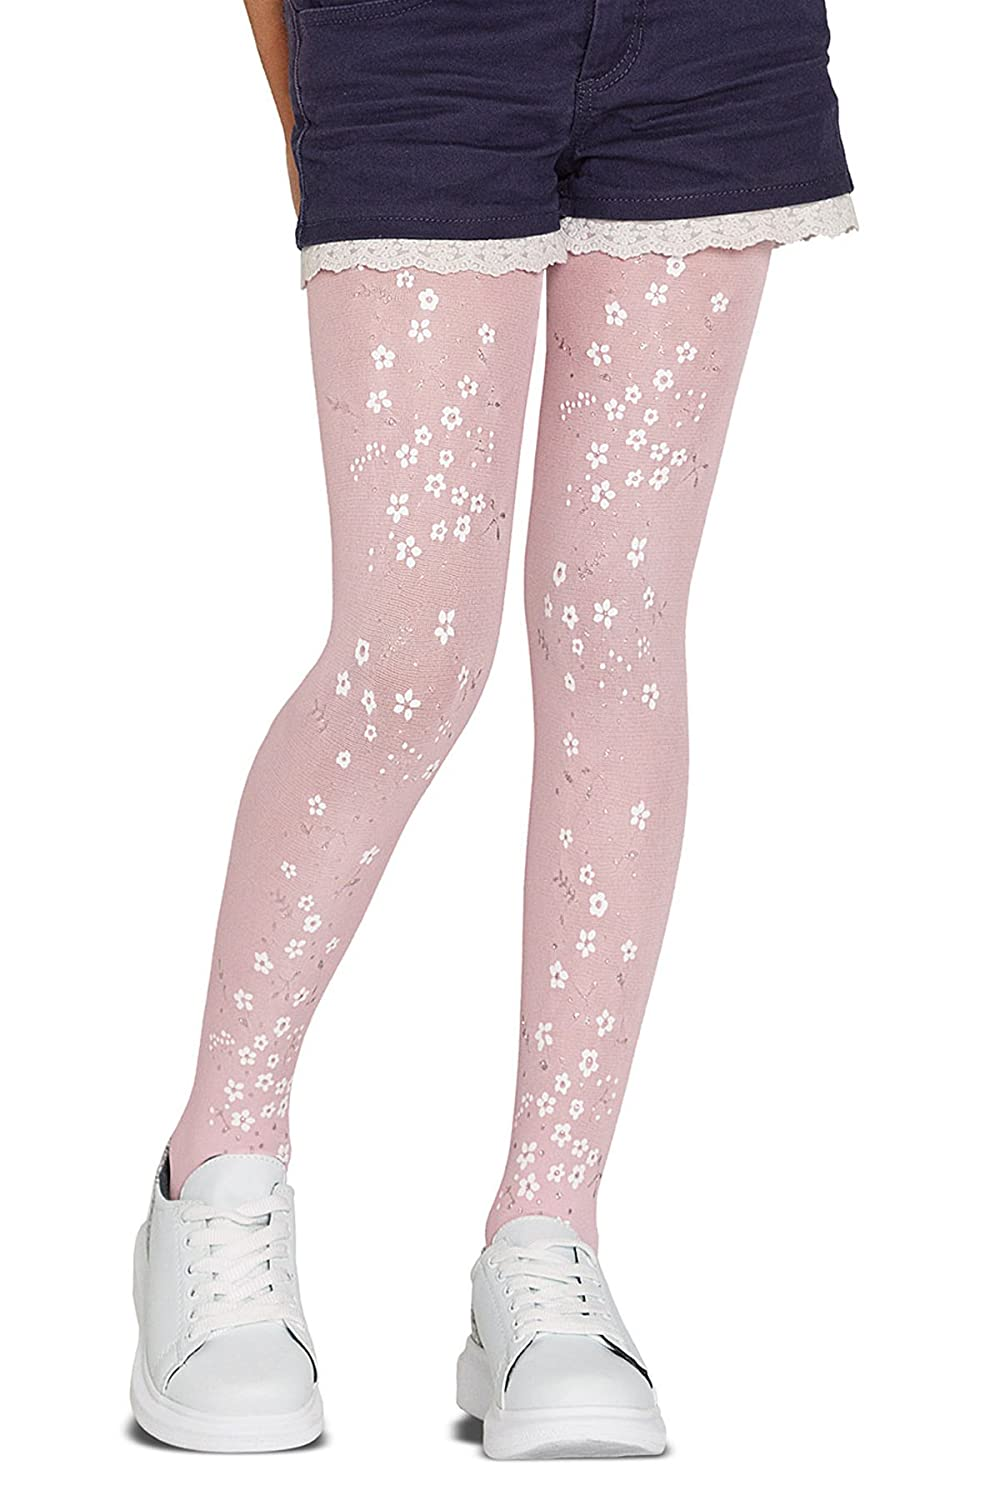 Penti Pretty Bouquet 40 Den Girls Printed Footed Tight